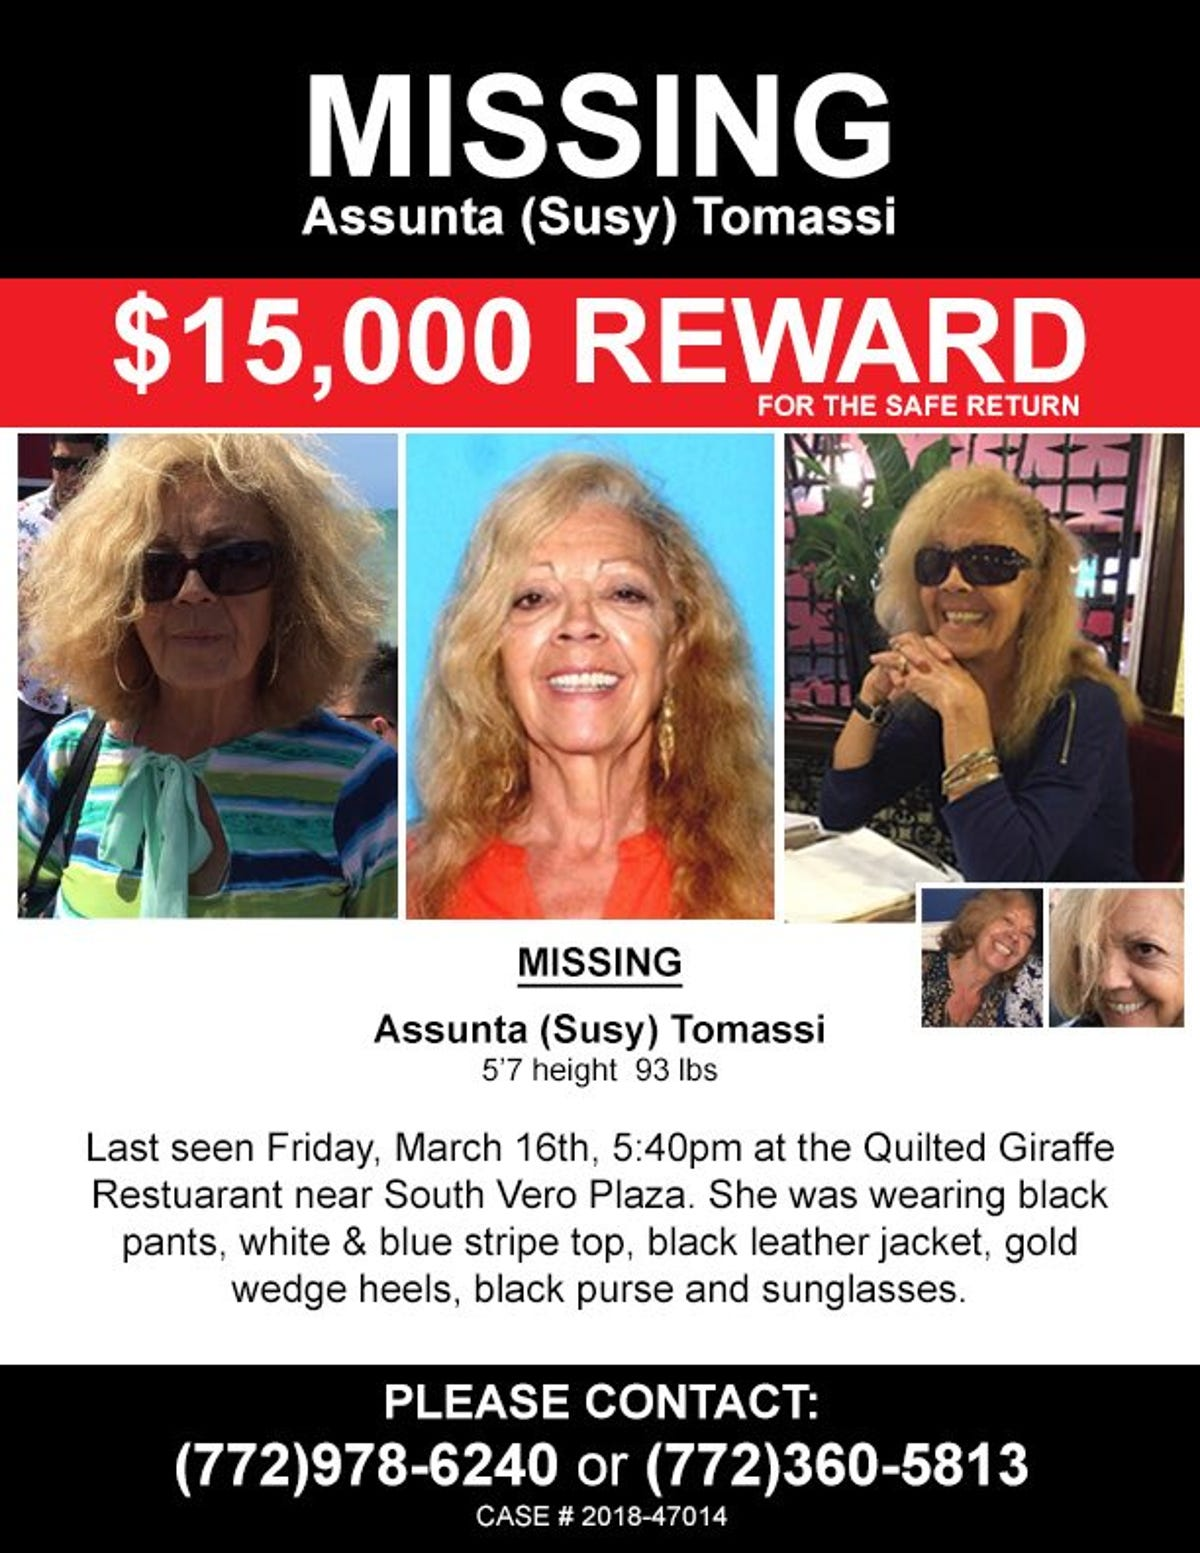 What happened to Susy Tomassi? 73-year-old with dementia